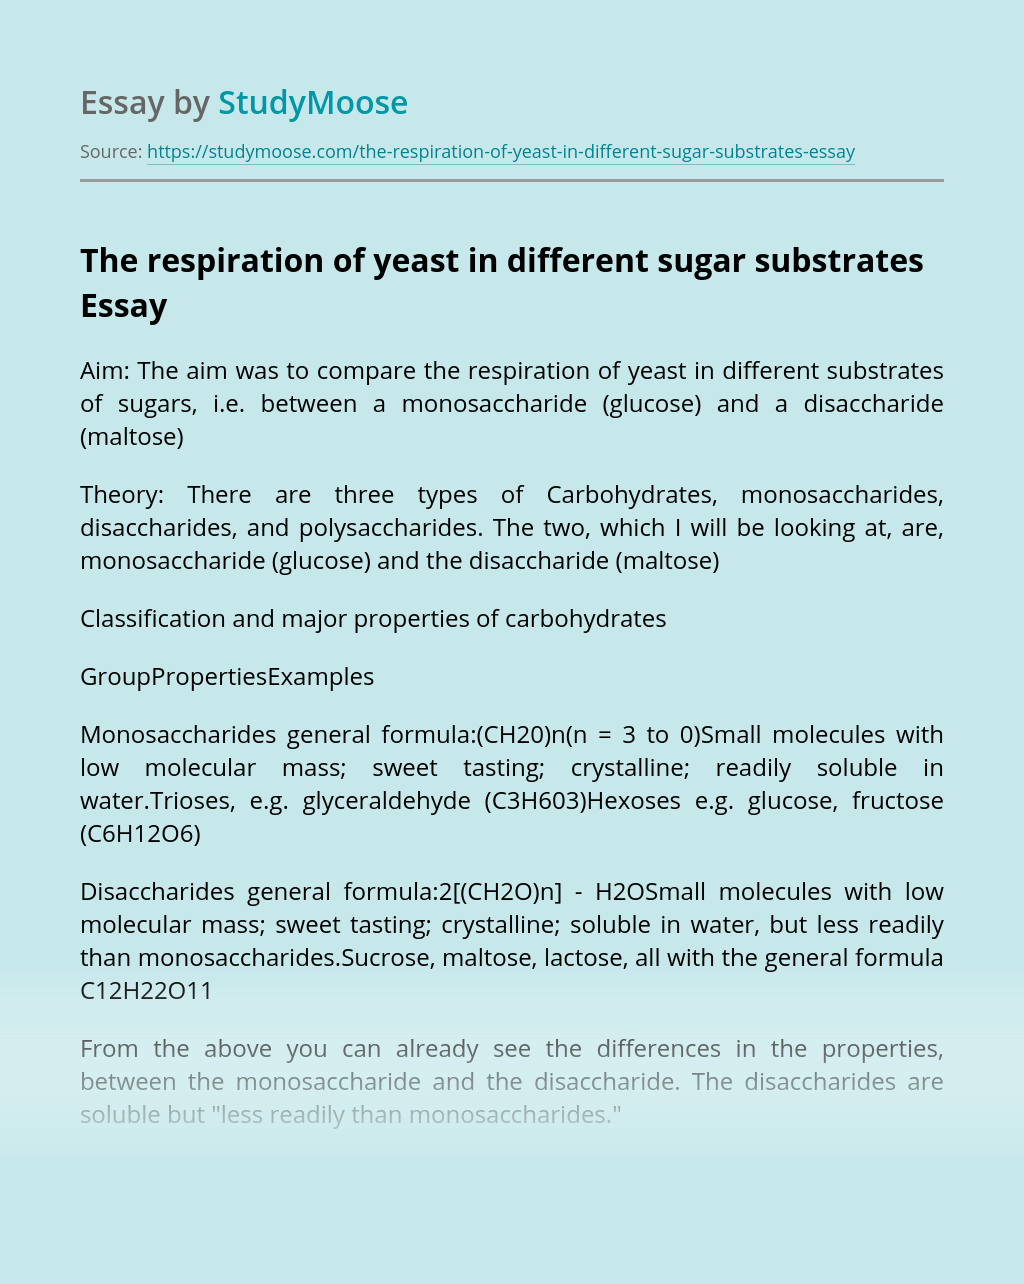 The respiration of yeast in different sugar substrates